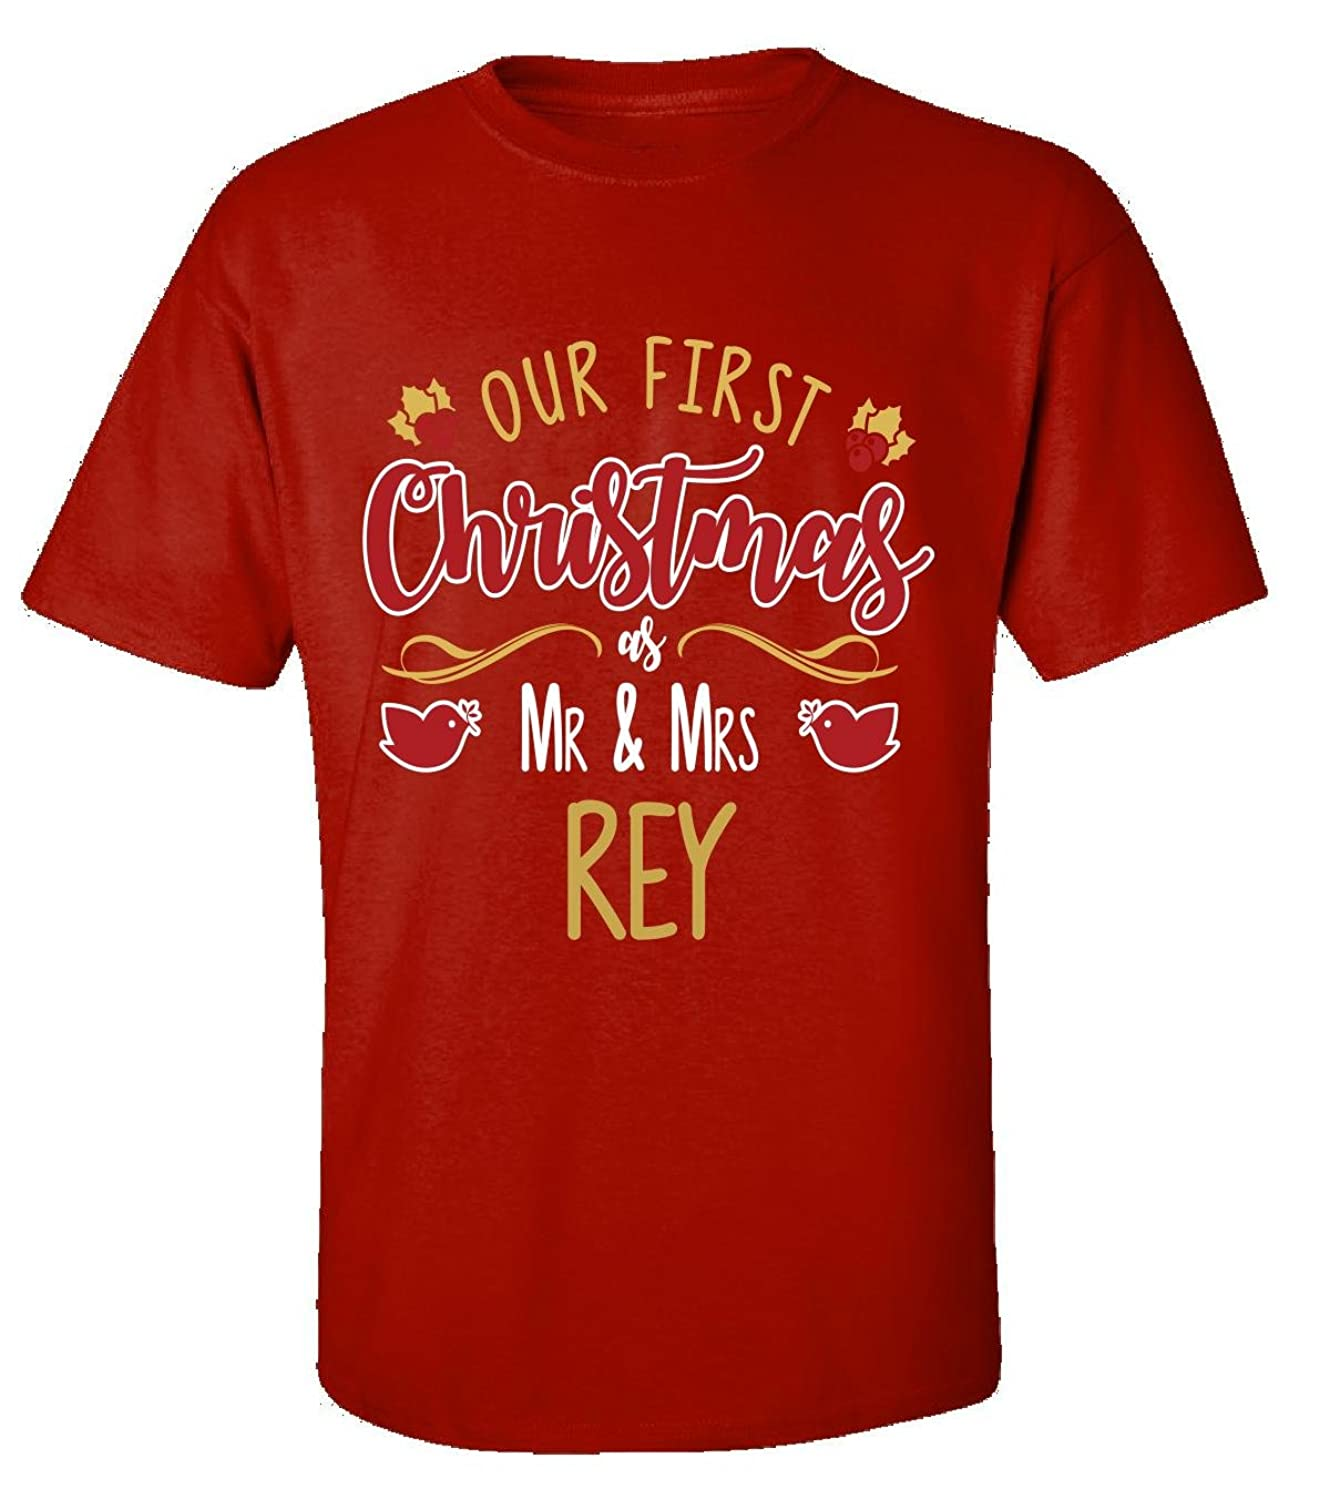 Our First Christmas As Mr - Mrs Rey - Adult Shirt